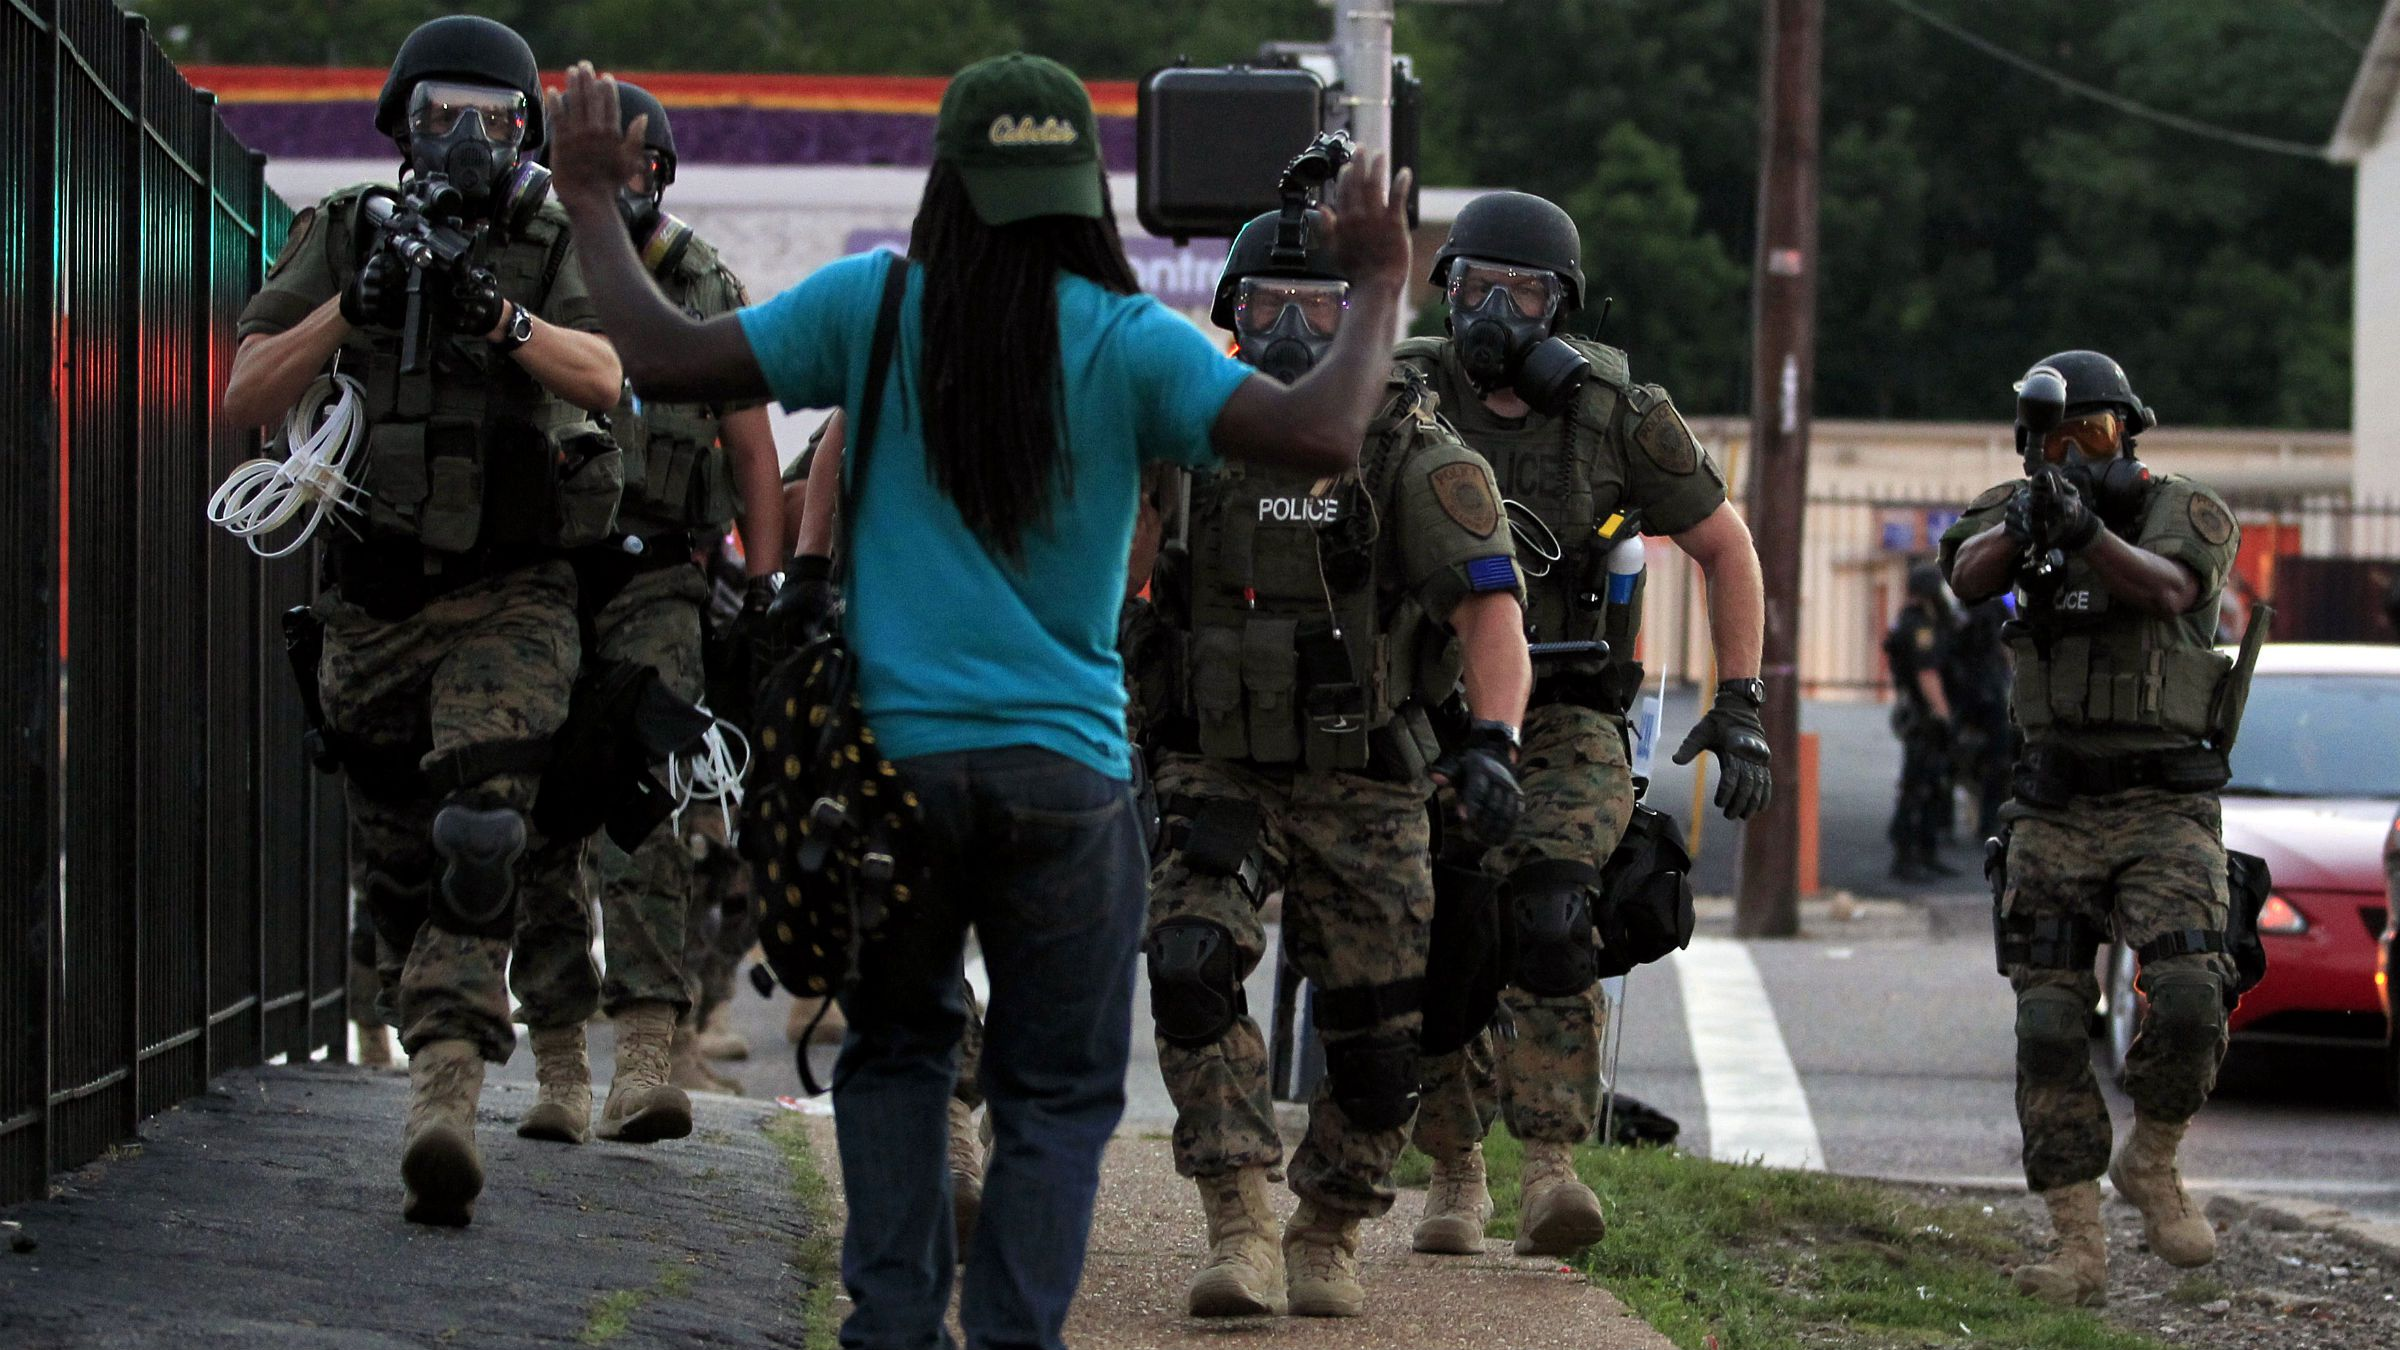 Police wearing riot gear walk toward a man with his hands raised Monday, Aug. 11, 2014, in Ferguson, Mo. Authorities have made several arrests in Ferguson, where crowds have looted and burned stores, vandalized vehicles and taunted police after a vigil for an unarmed black man who was killed by police. (AP Photo/Jeff Roberson)